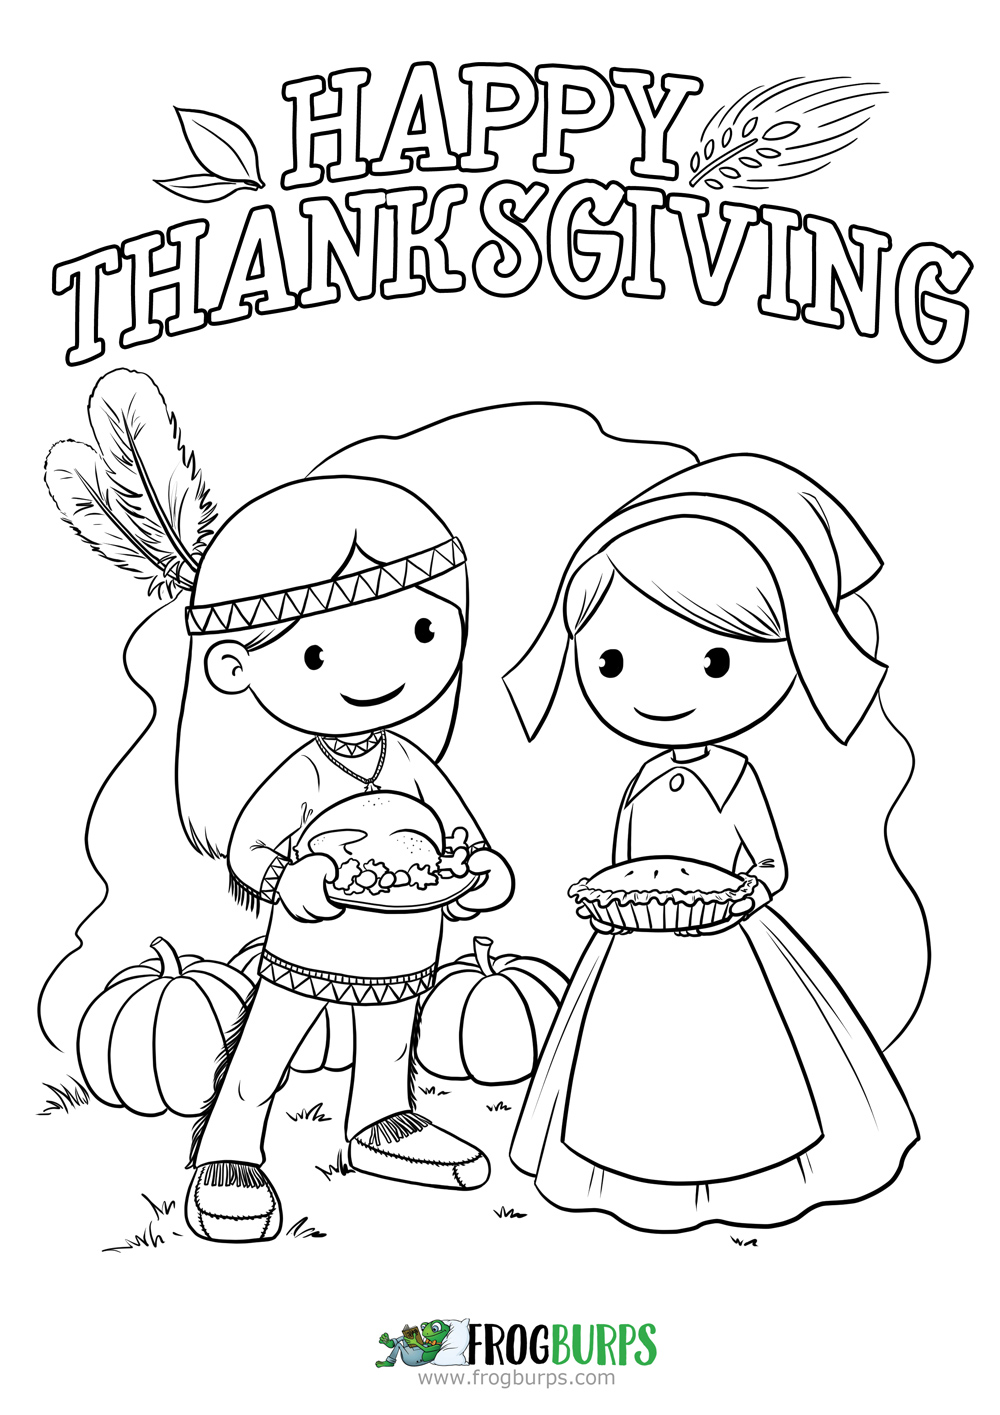 Happy Thanksgiving 2015 | Coloring Page